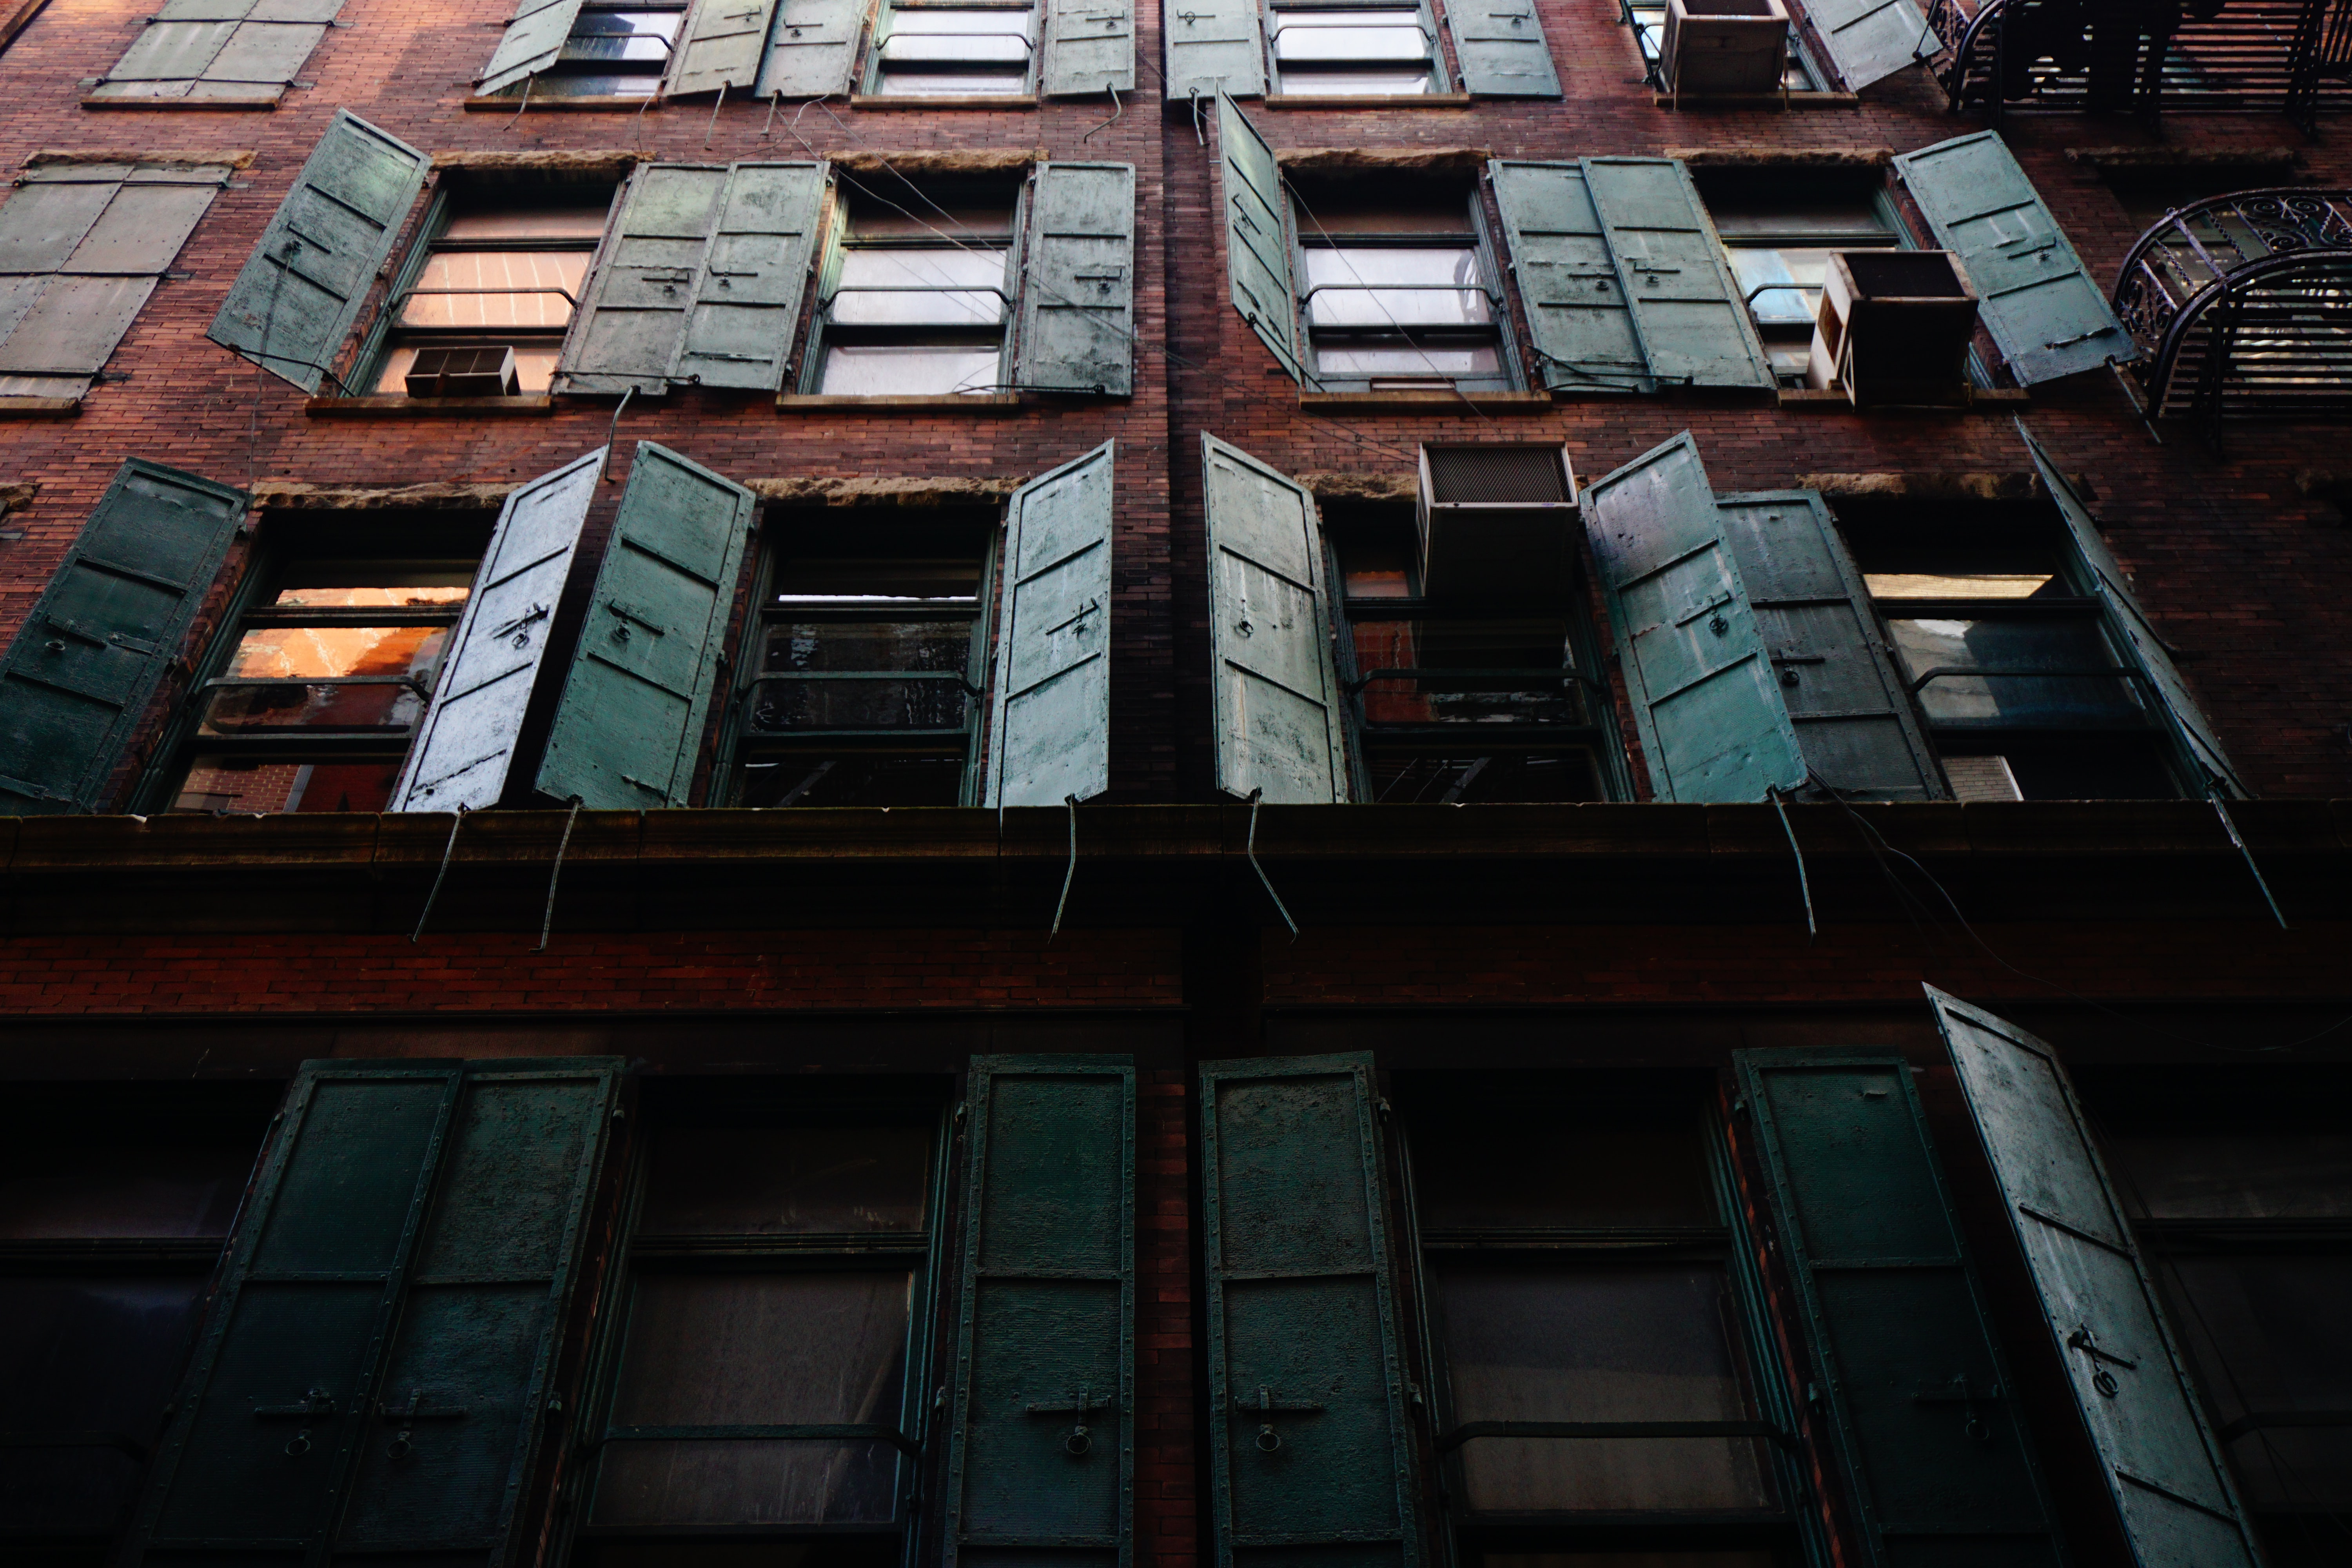 An old brick building with rustic window shutters in New York.